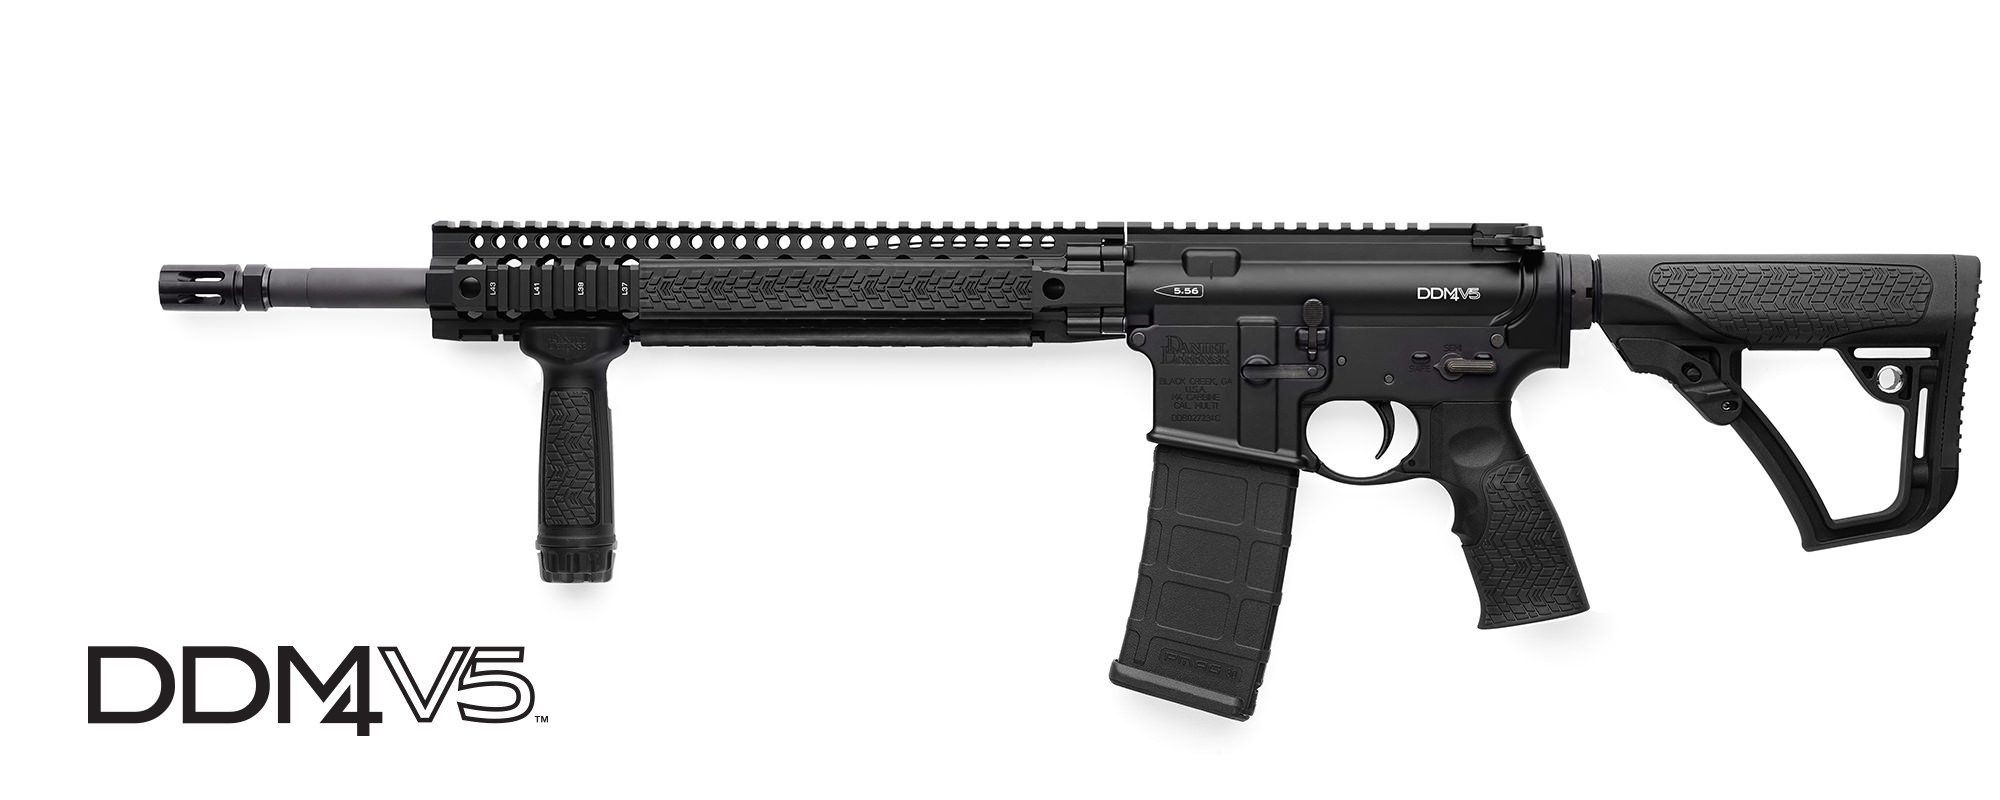 "DANIEL DEFENSE M4 V5 SEMI-AUTO CARBINE, 223 (5.56MM NATO), 16"" BBL, VERT GRIP, BLACK, NEW"